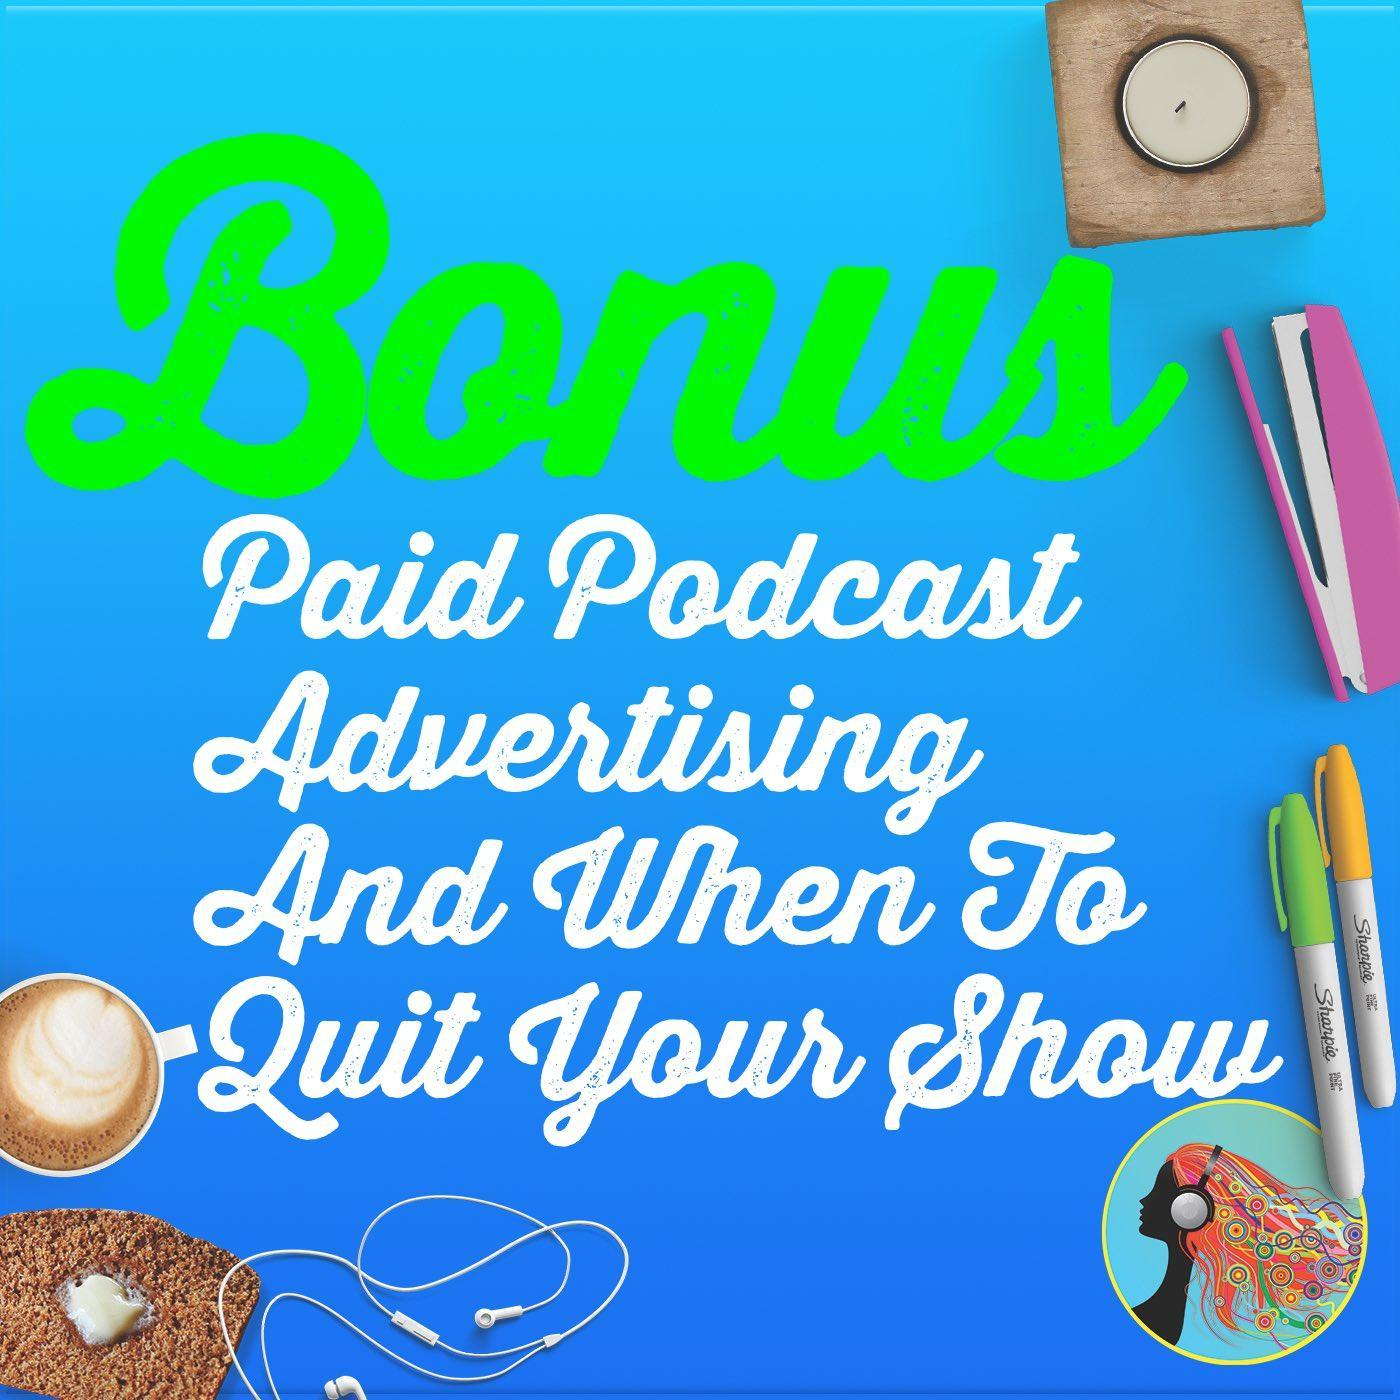 Bonus: Paid Podcast Advertising And When To Quit Your Show